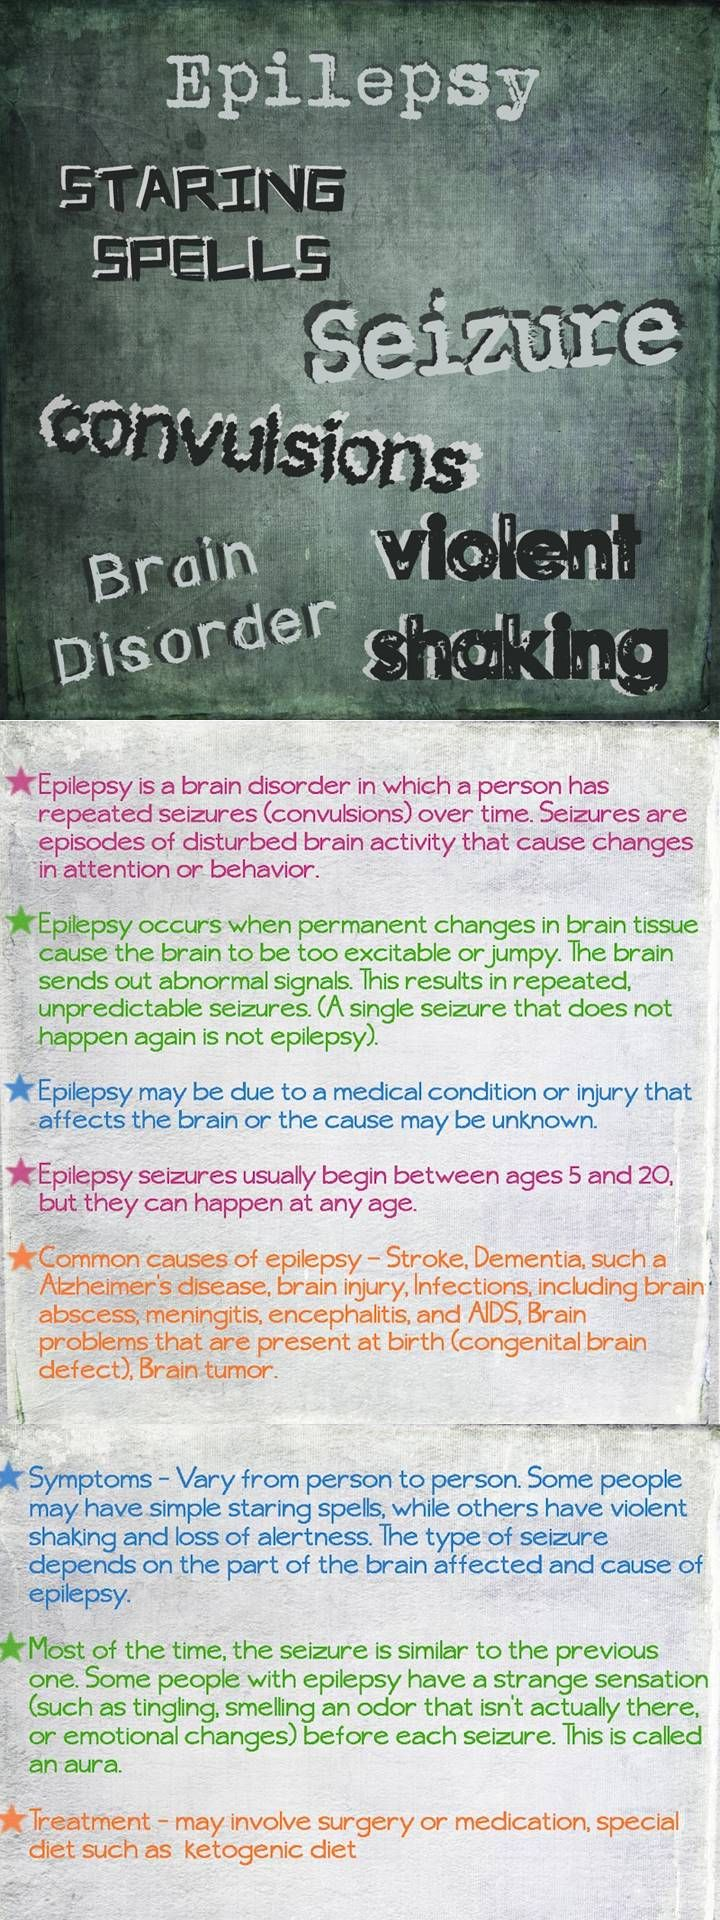 I am trying to educate the public about this disorder with the help of pinterest.  Many people are ignorant about the disorder, hope this helps to understand - you never know you might witness someone having a seizure.